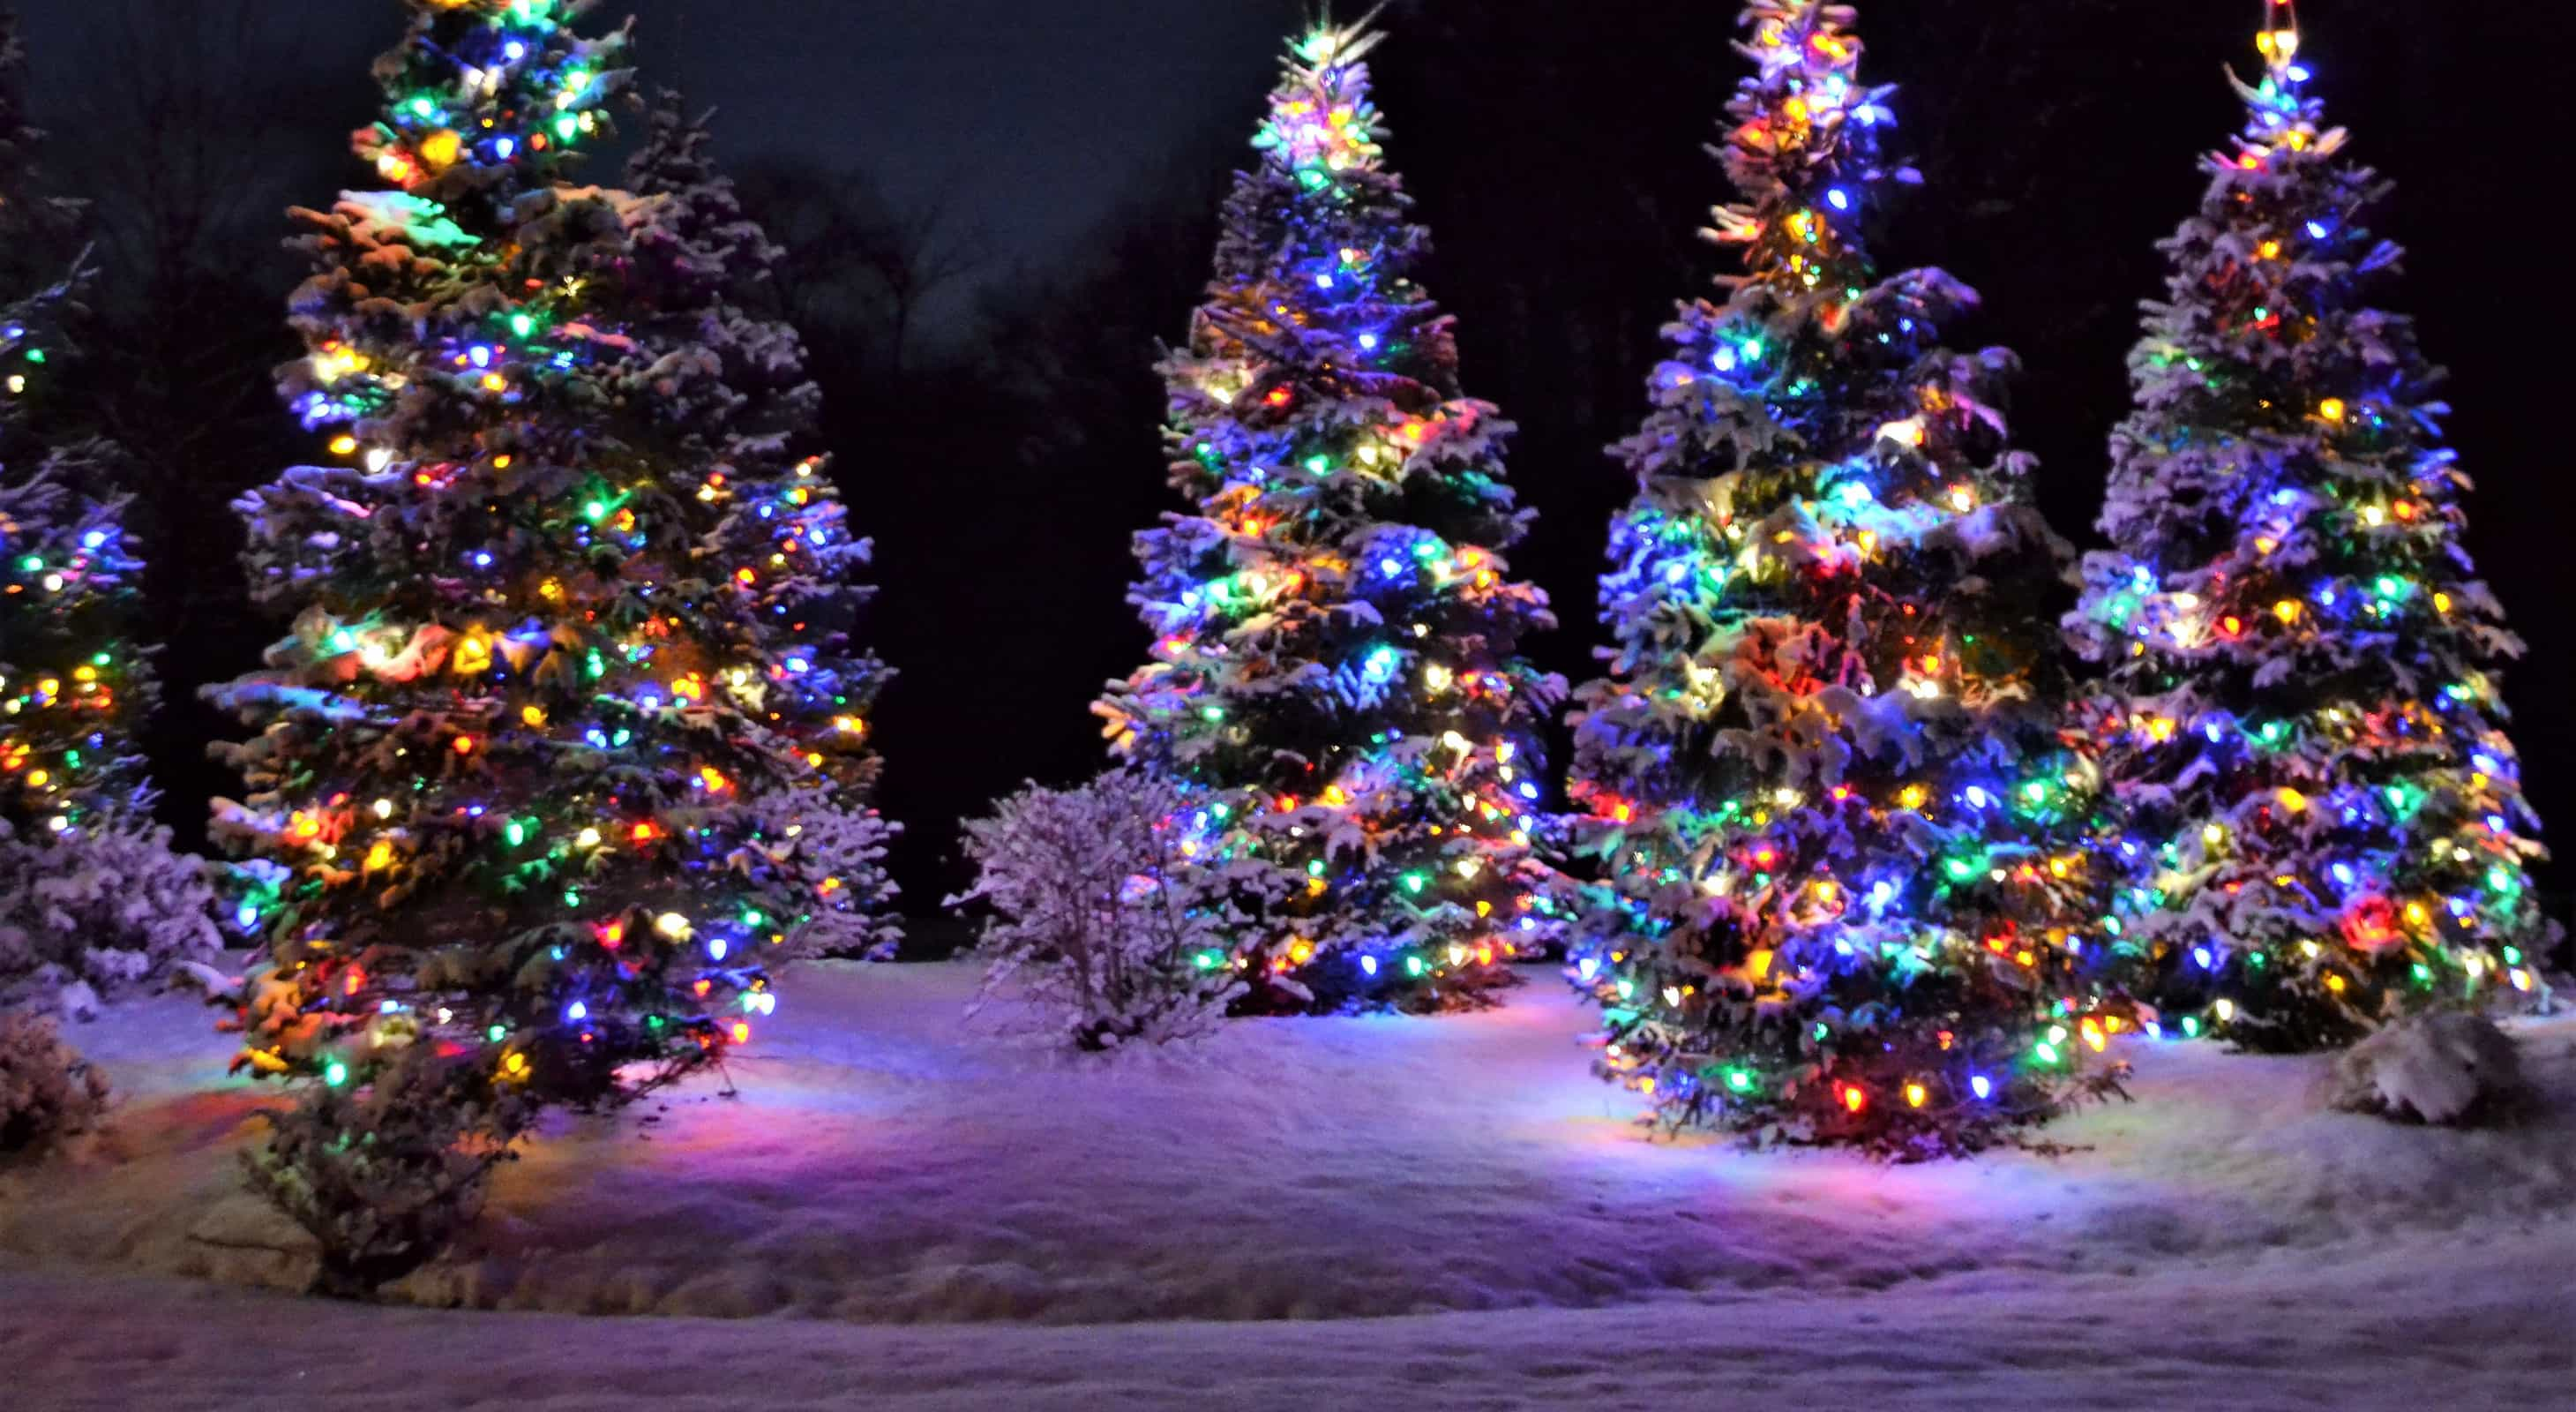 Christmas lights on trees in the snow